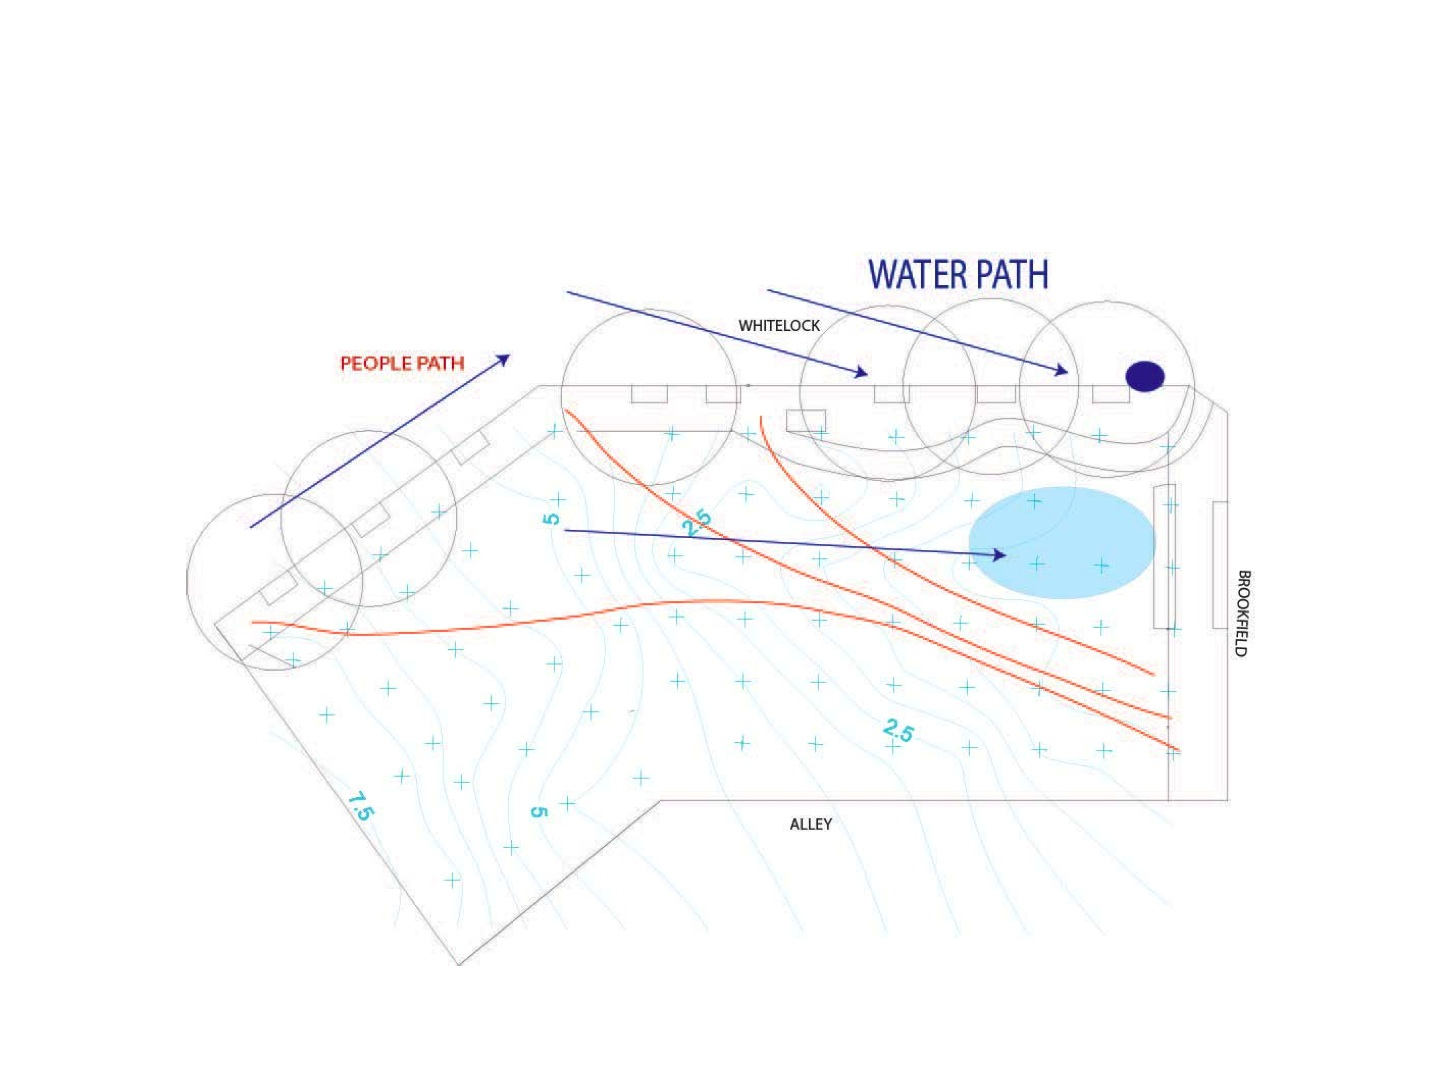 03 05 12 South Whitelock plan